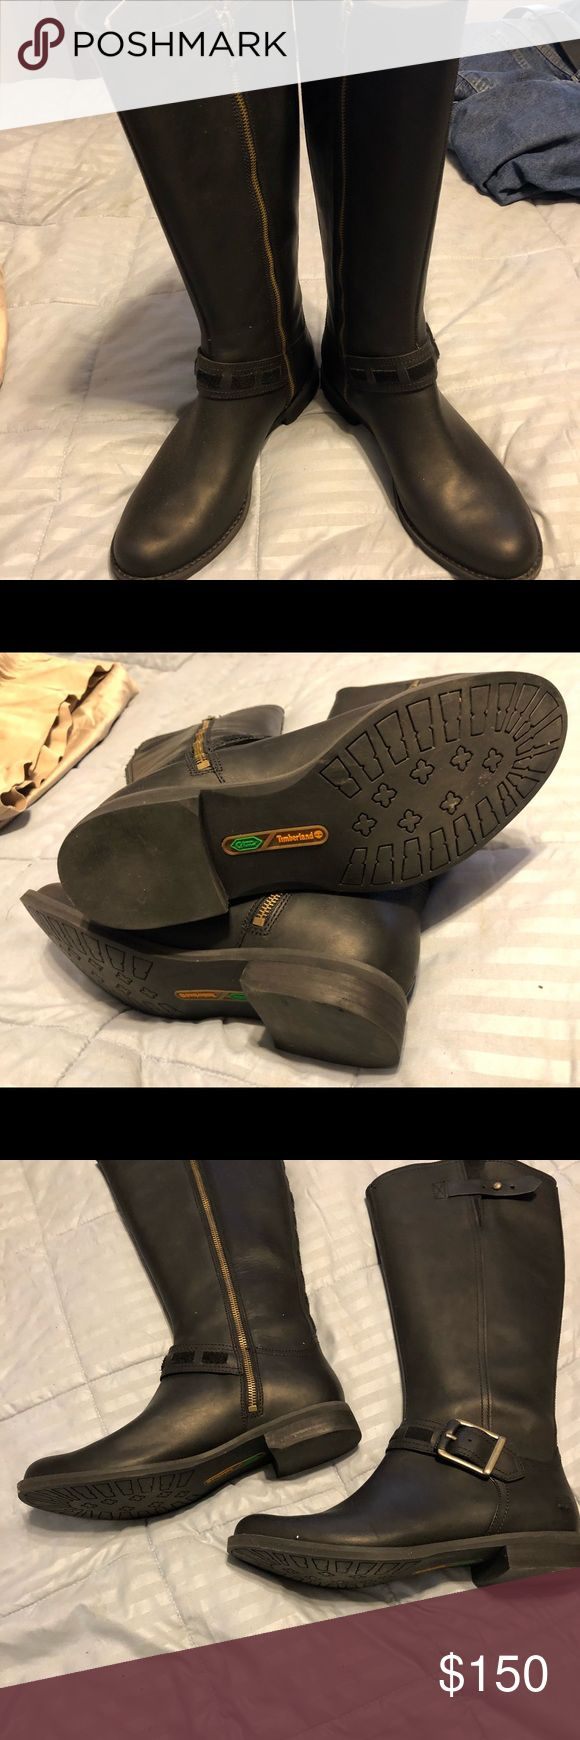 Ladies Timberland Boots Worn 1 time Timberland Shoes